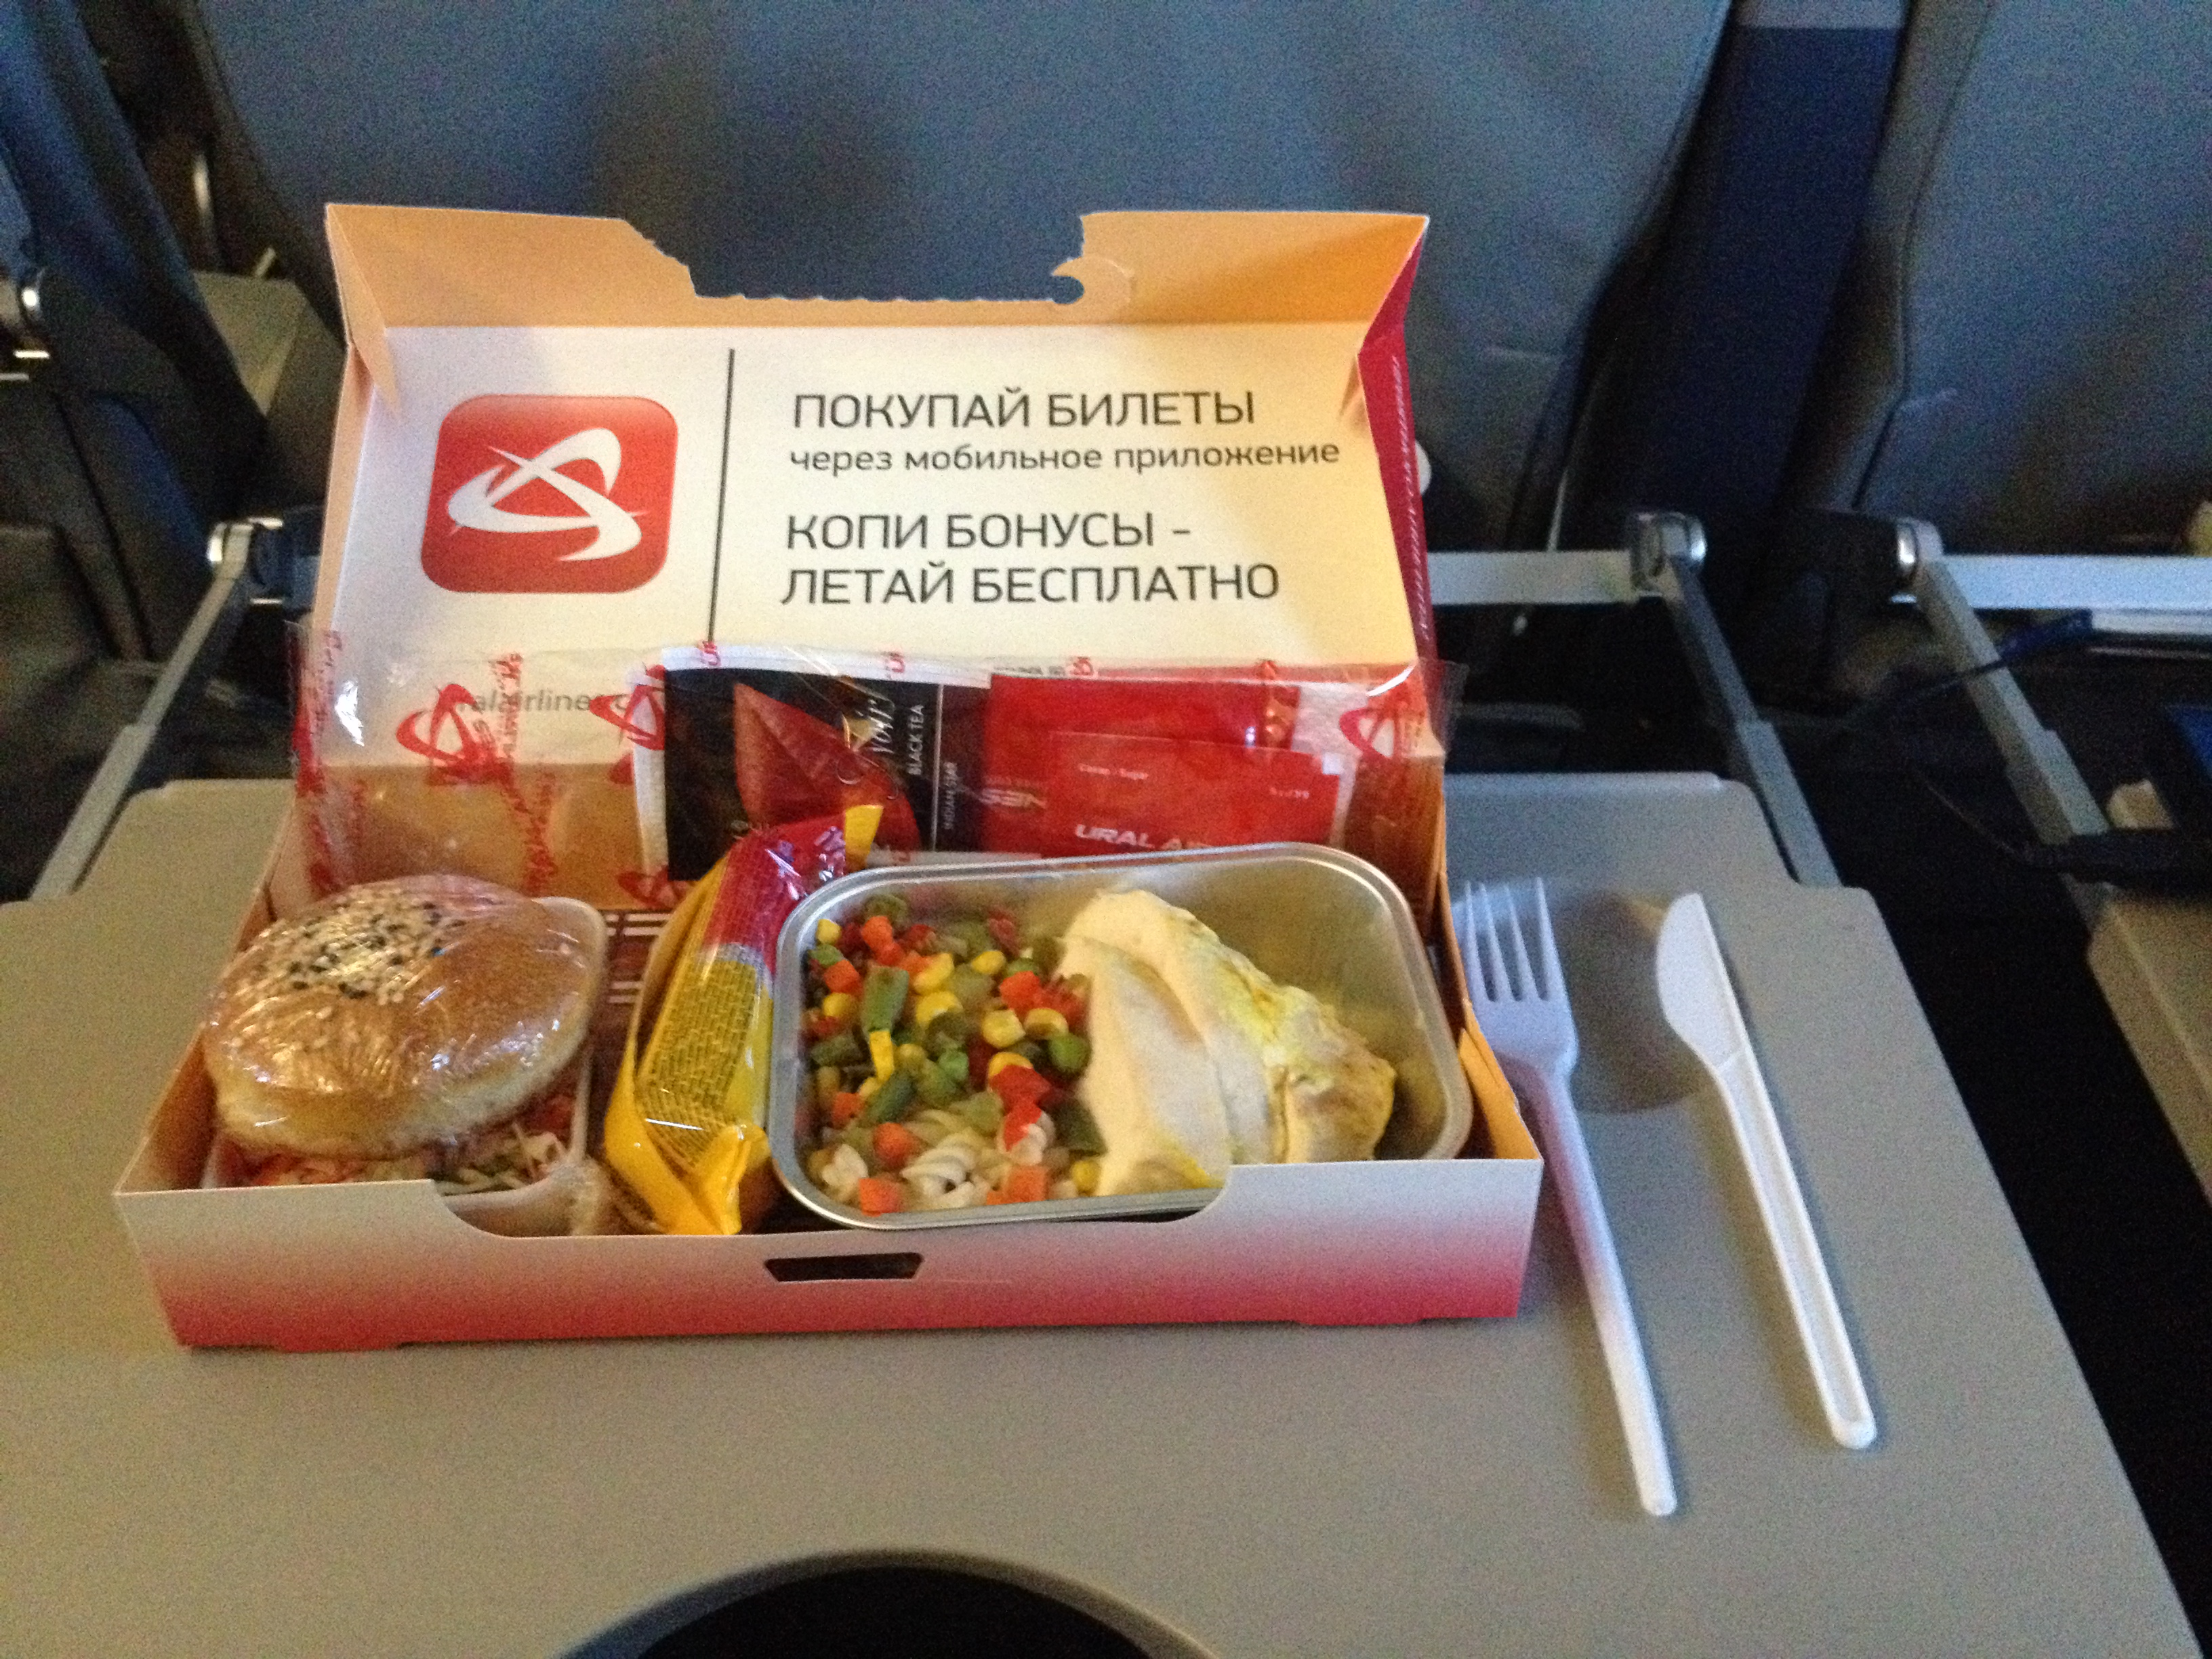 File:Ural Airlines OnBoard Meal.jpg - Wikimedia Commons